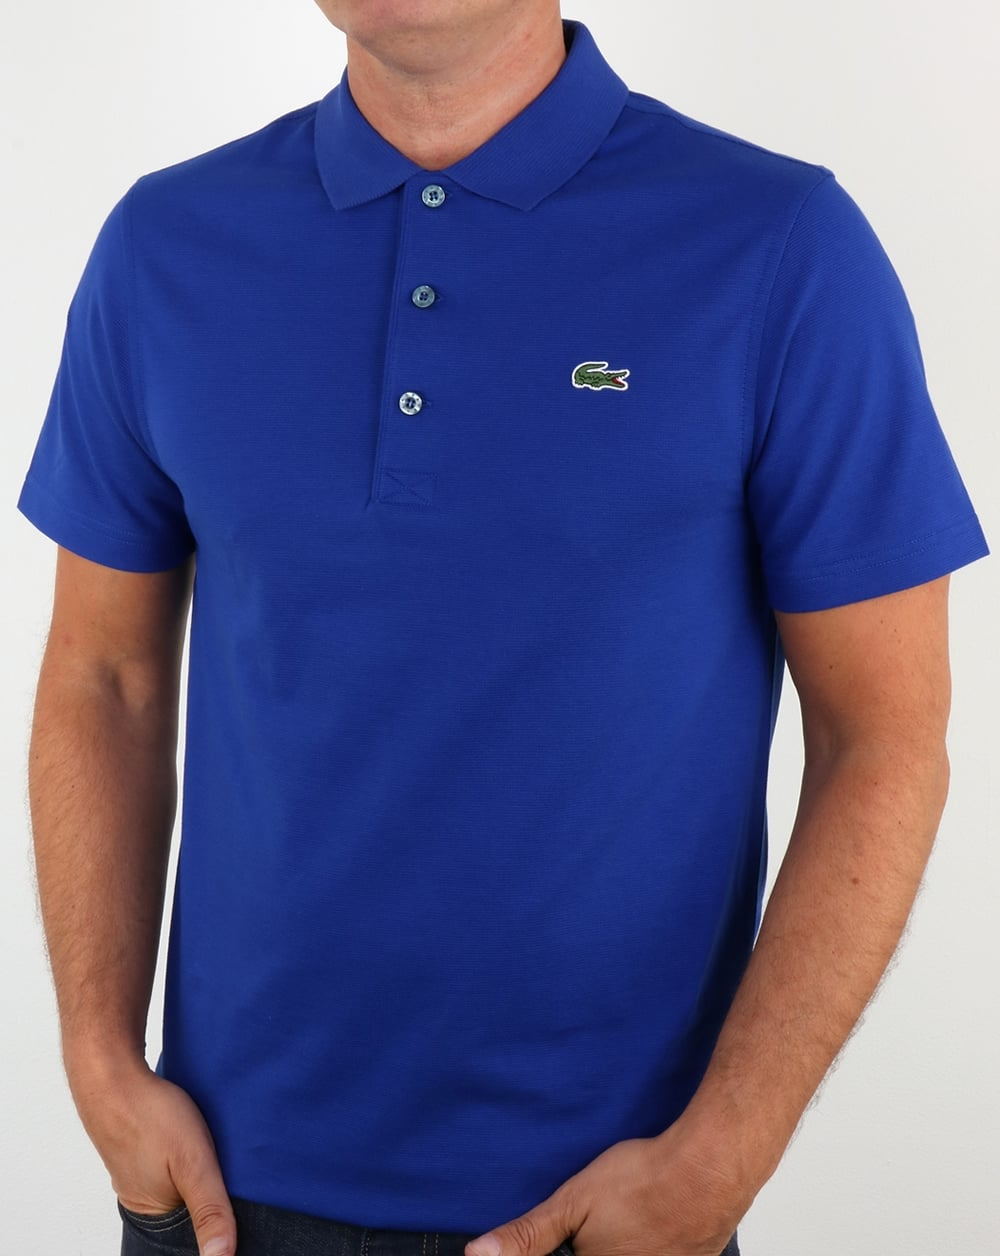 Our Polo Shirts for Men are always trendy, displaying stylish solid and striped color varieties that allow you to make your own bold fashion statement. Each polo shirt is suited for multi-purposes and comprised of high-quality % cotton.